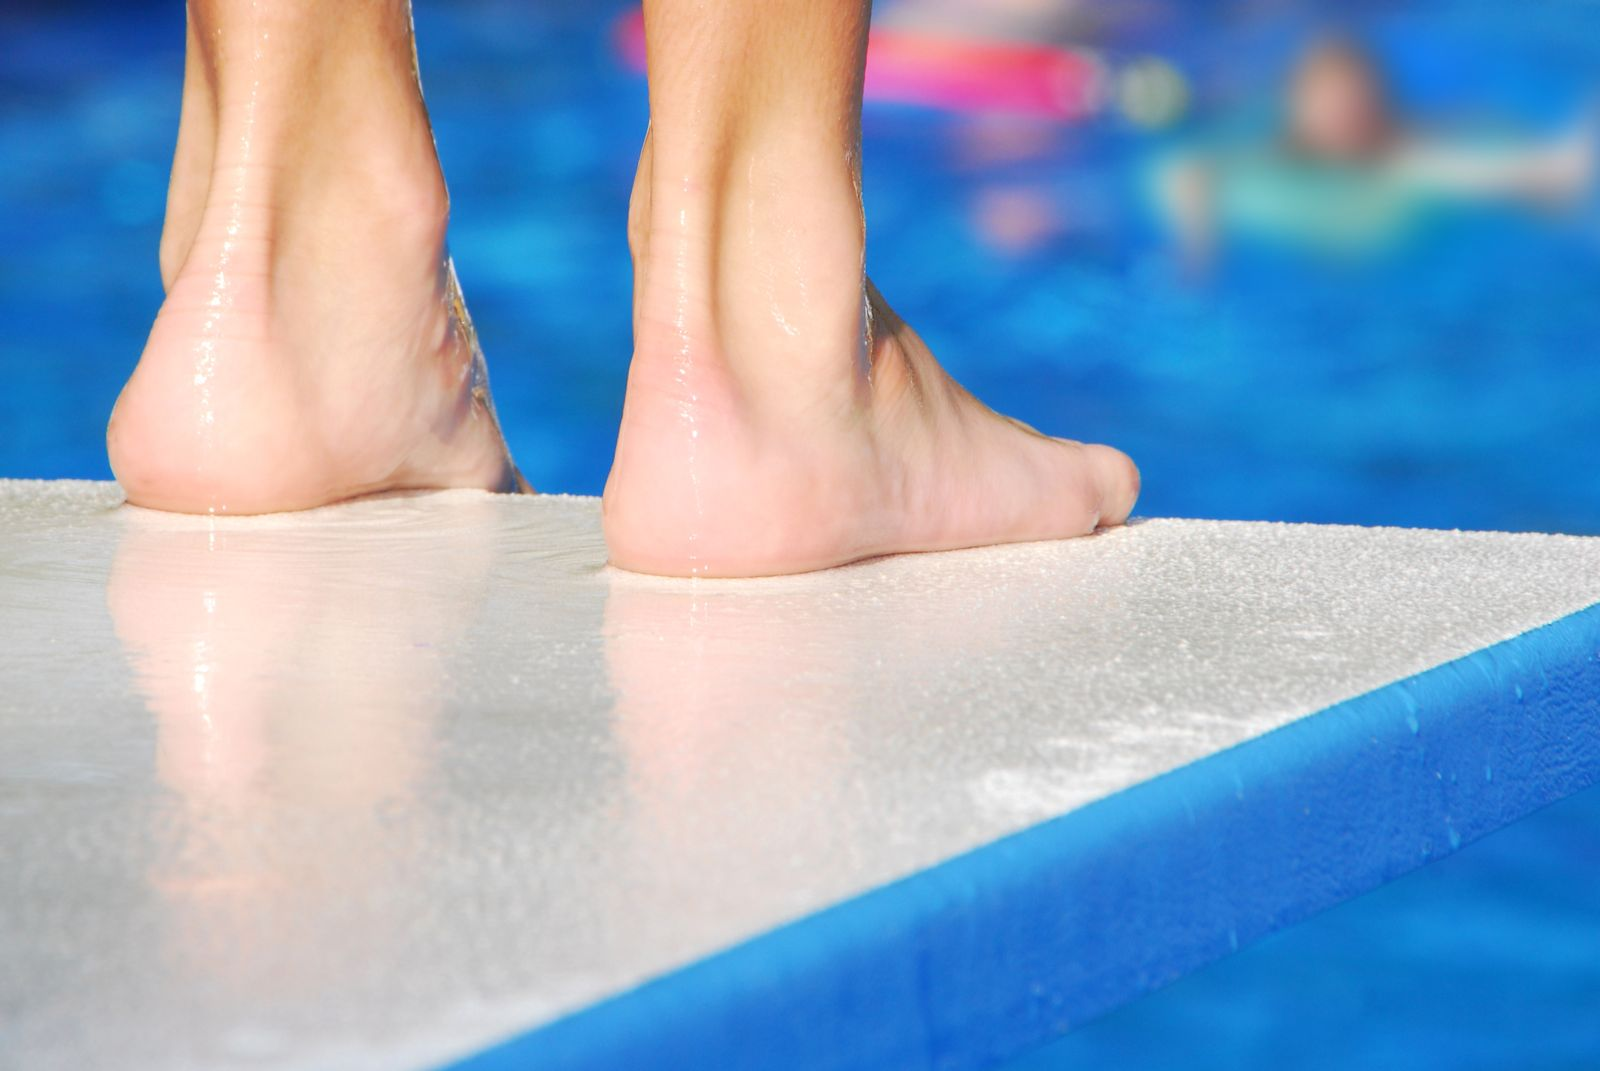 Walking barefoot at the pool or in a public locker room makes children vulnerable to plantar warts